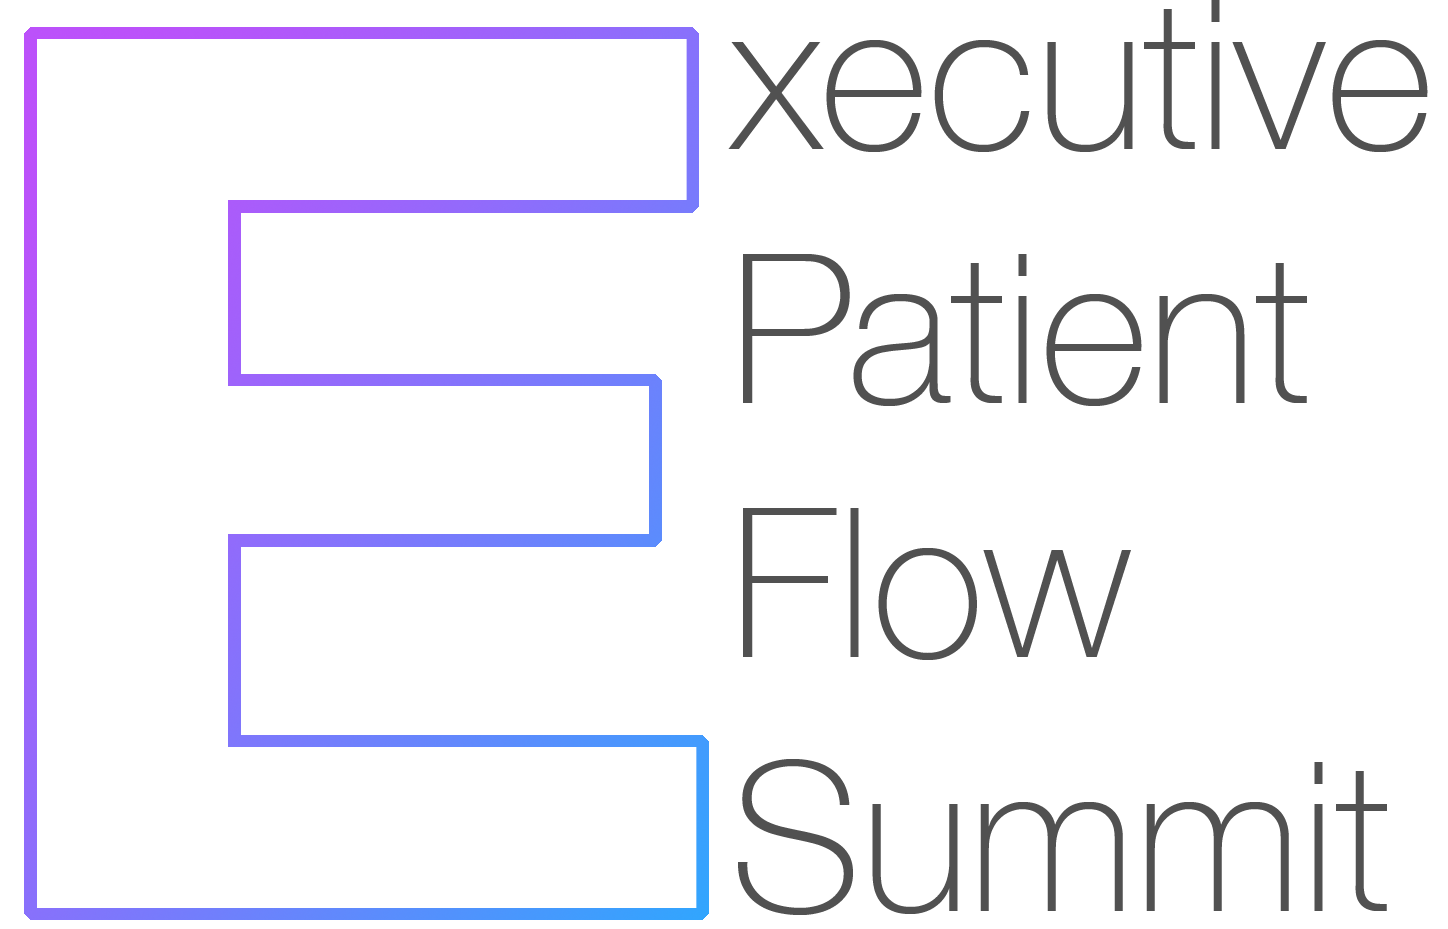 The Executive Patient Flow Winter Summit